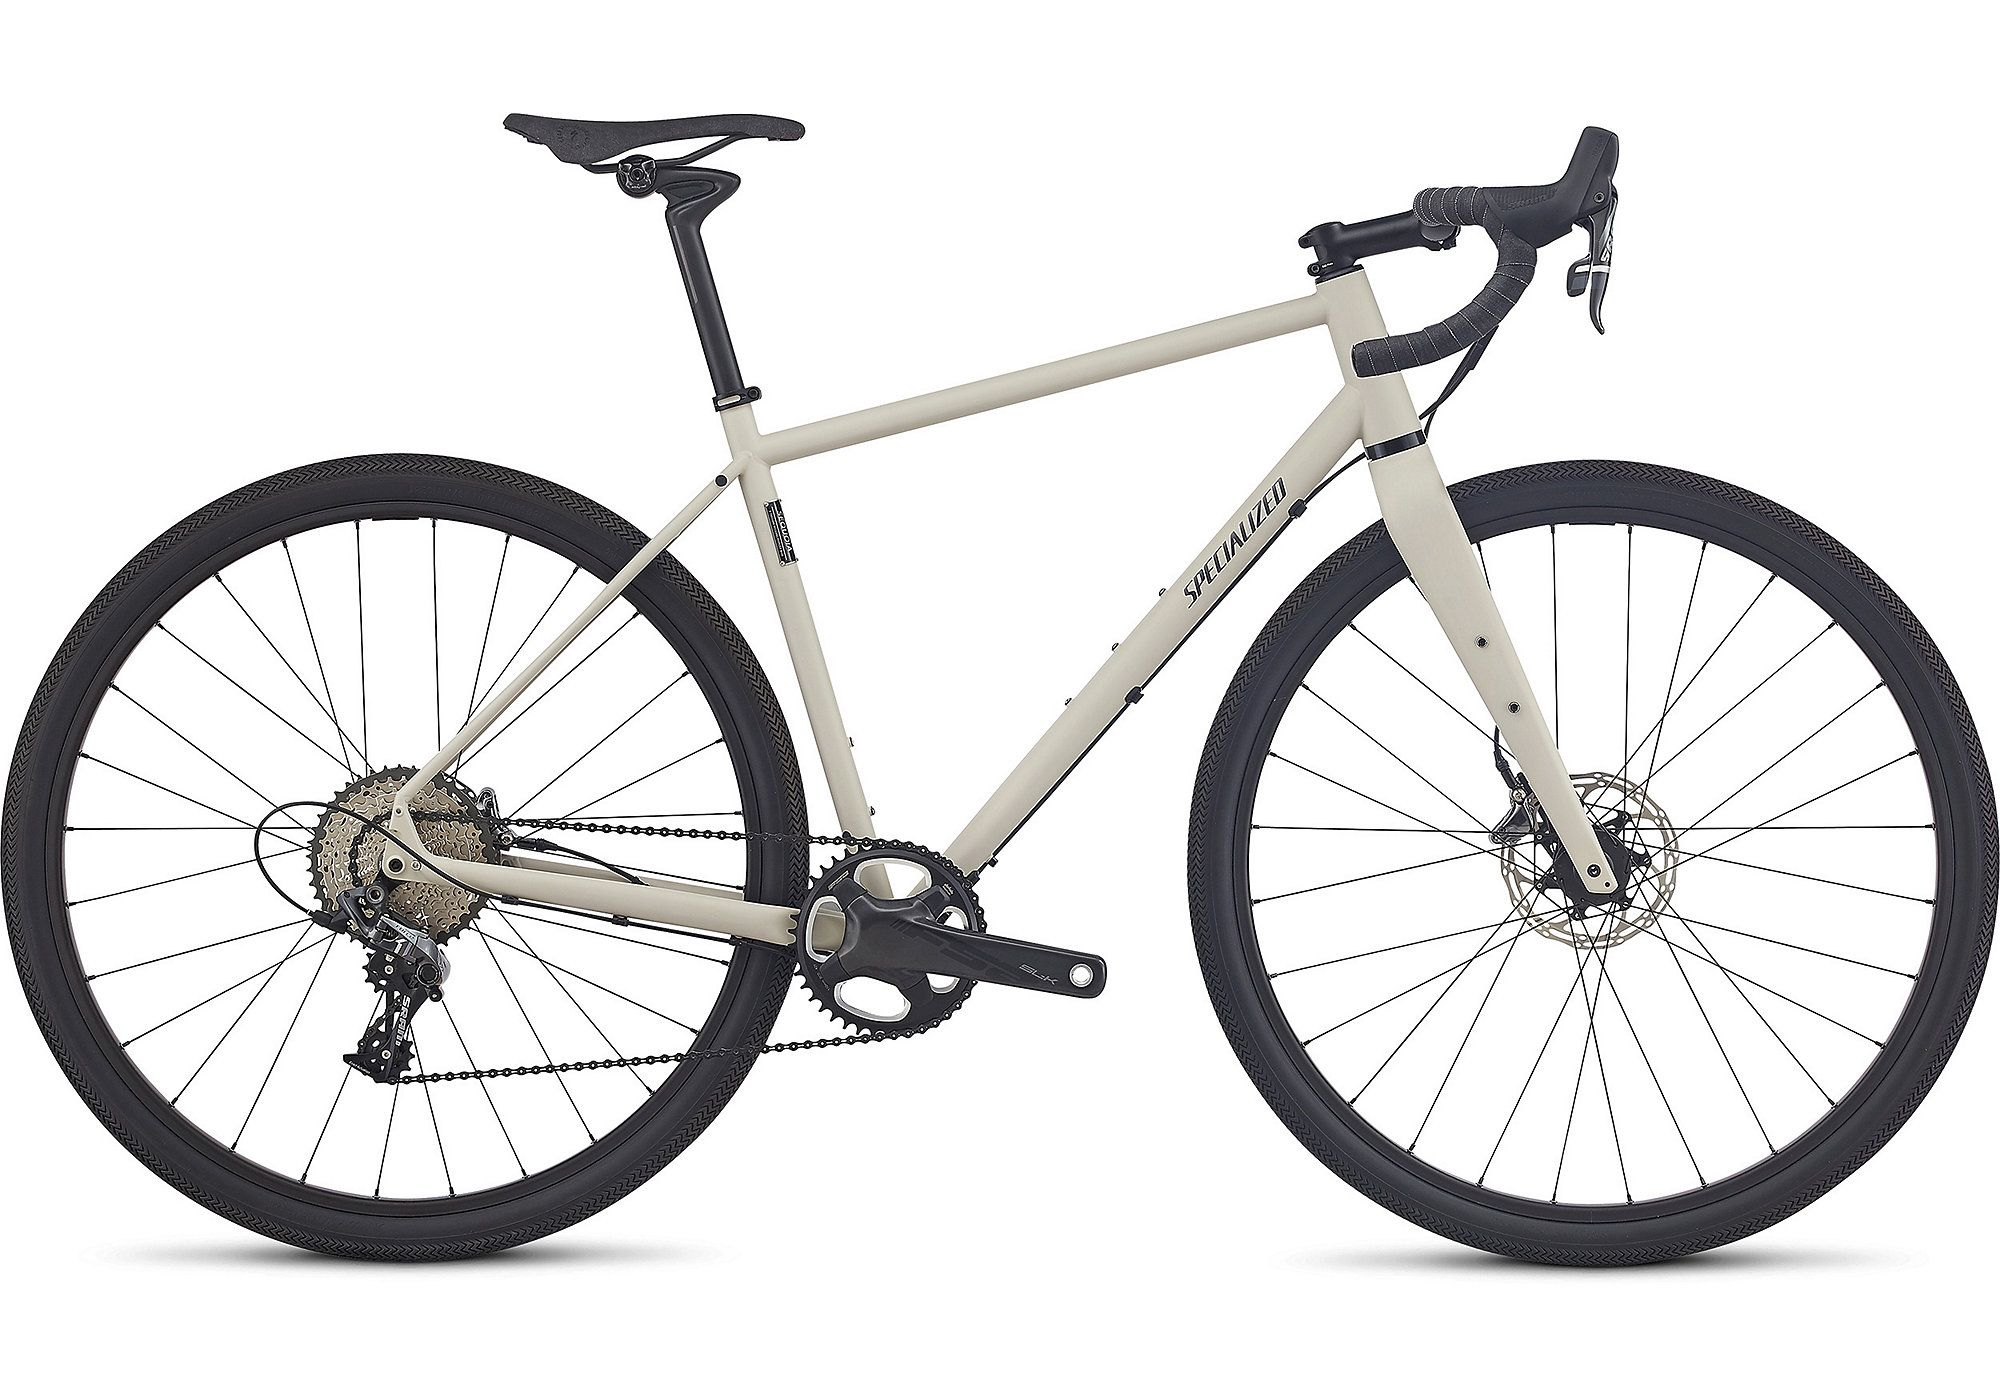 Sequoia Expert With Images Specialized Sequoia Gravel Bike